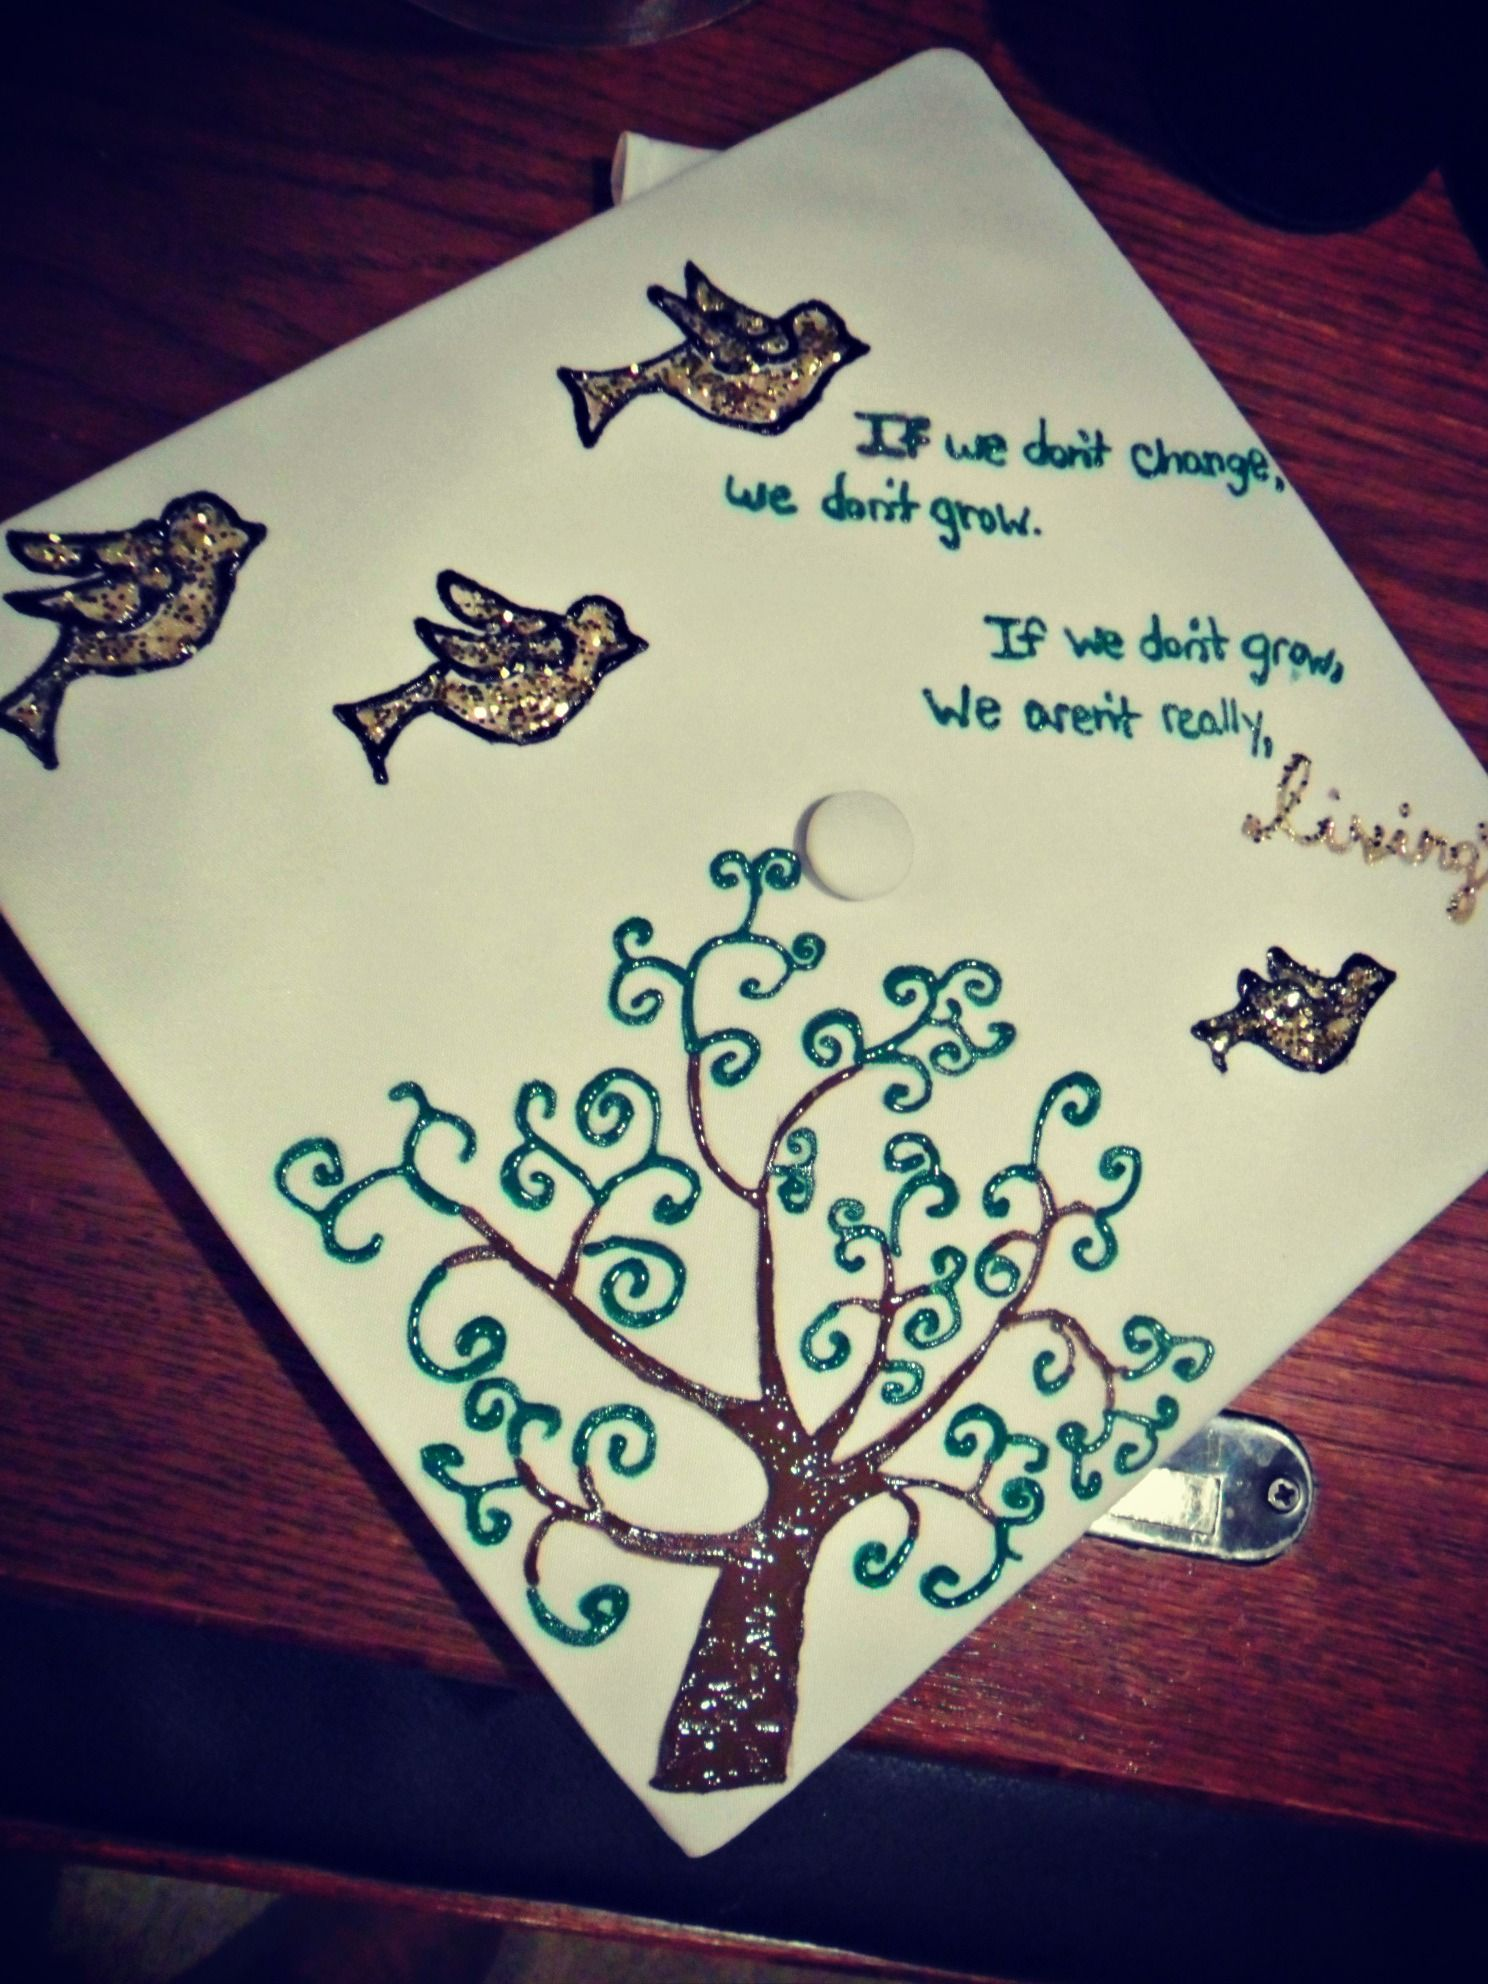 Graduation cap decoration quotes for Decoration quotes sayings